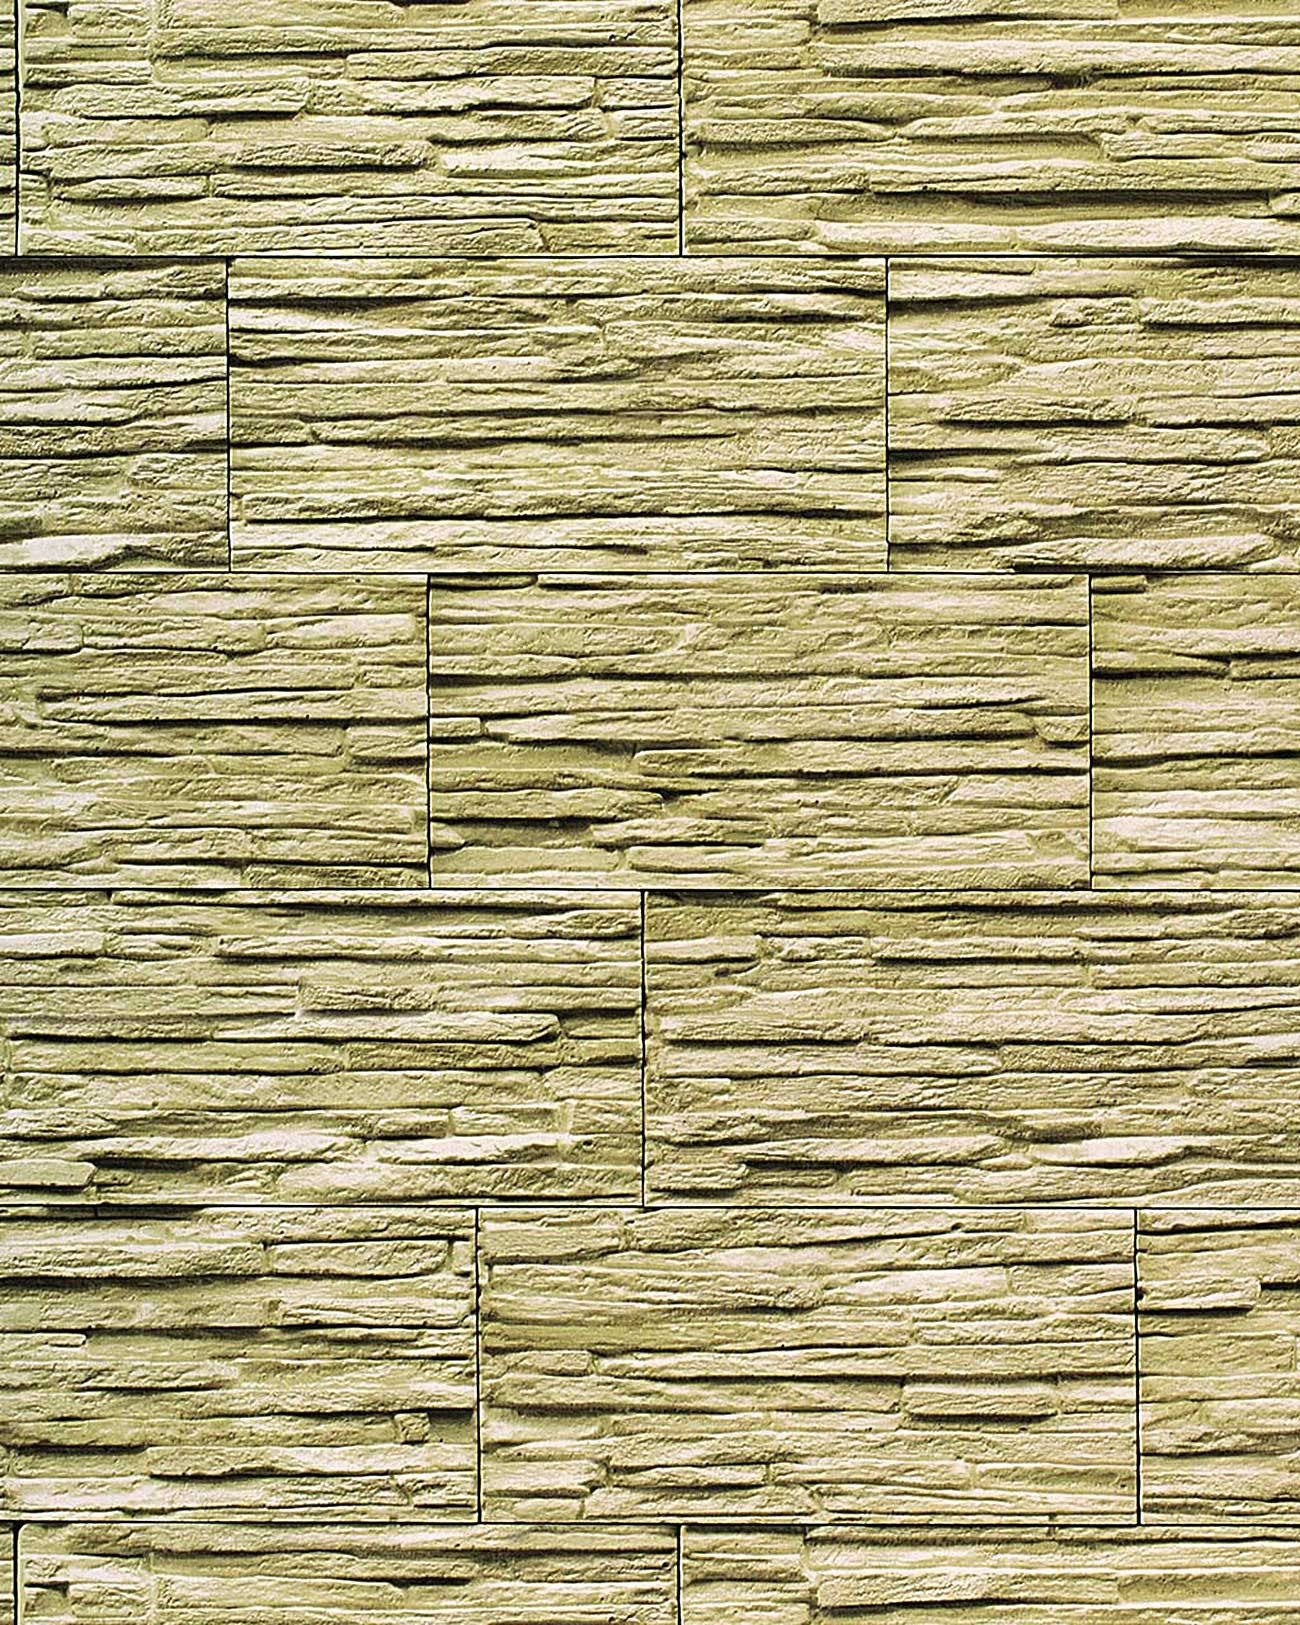 Vinyl wallpaper modern textured stone natural 1003-35 brick decor washable olive-green green